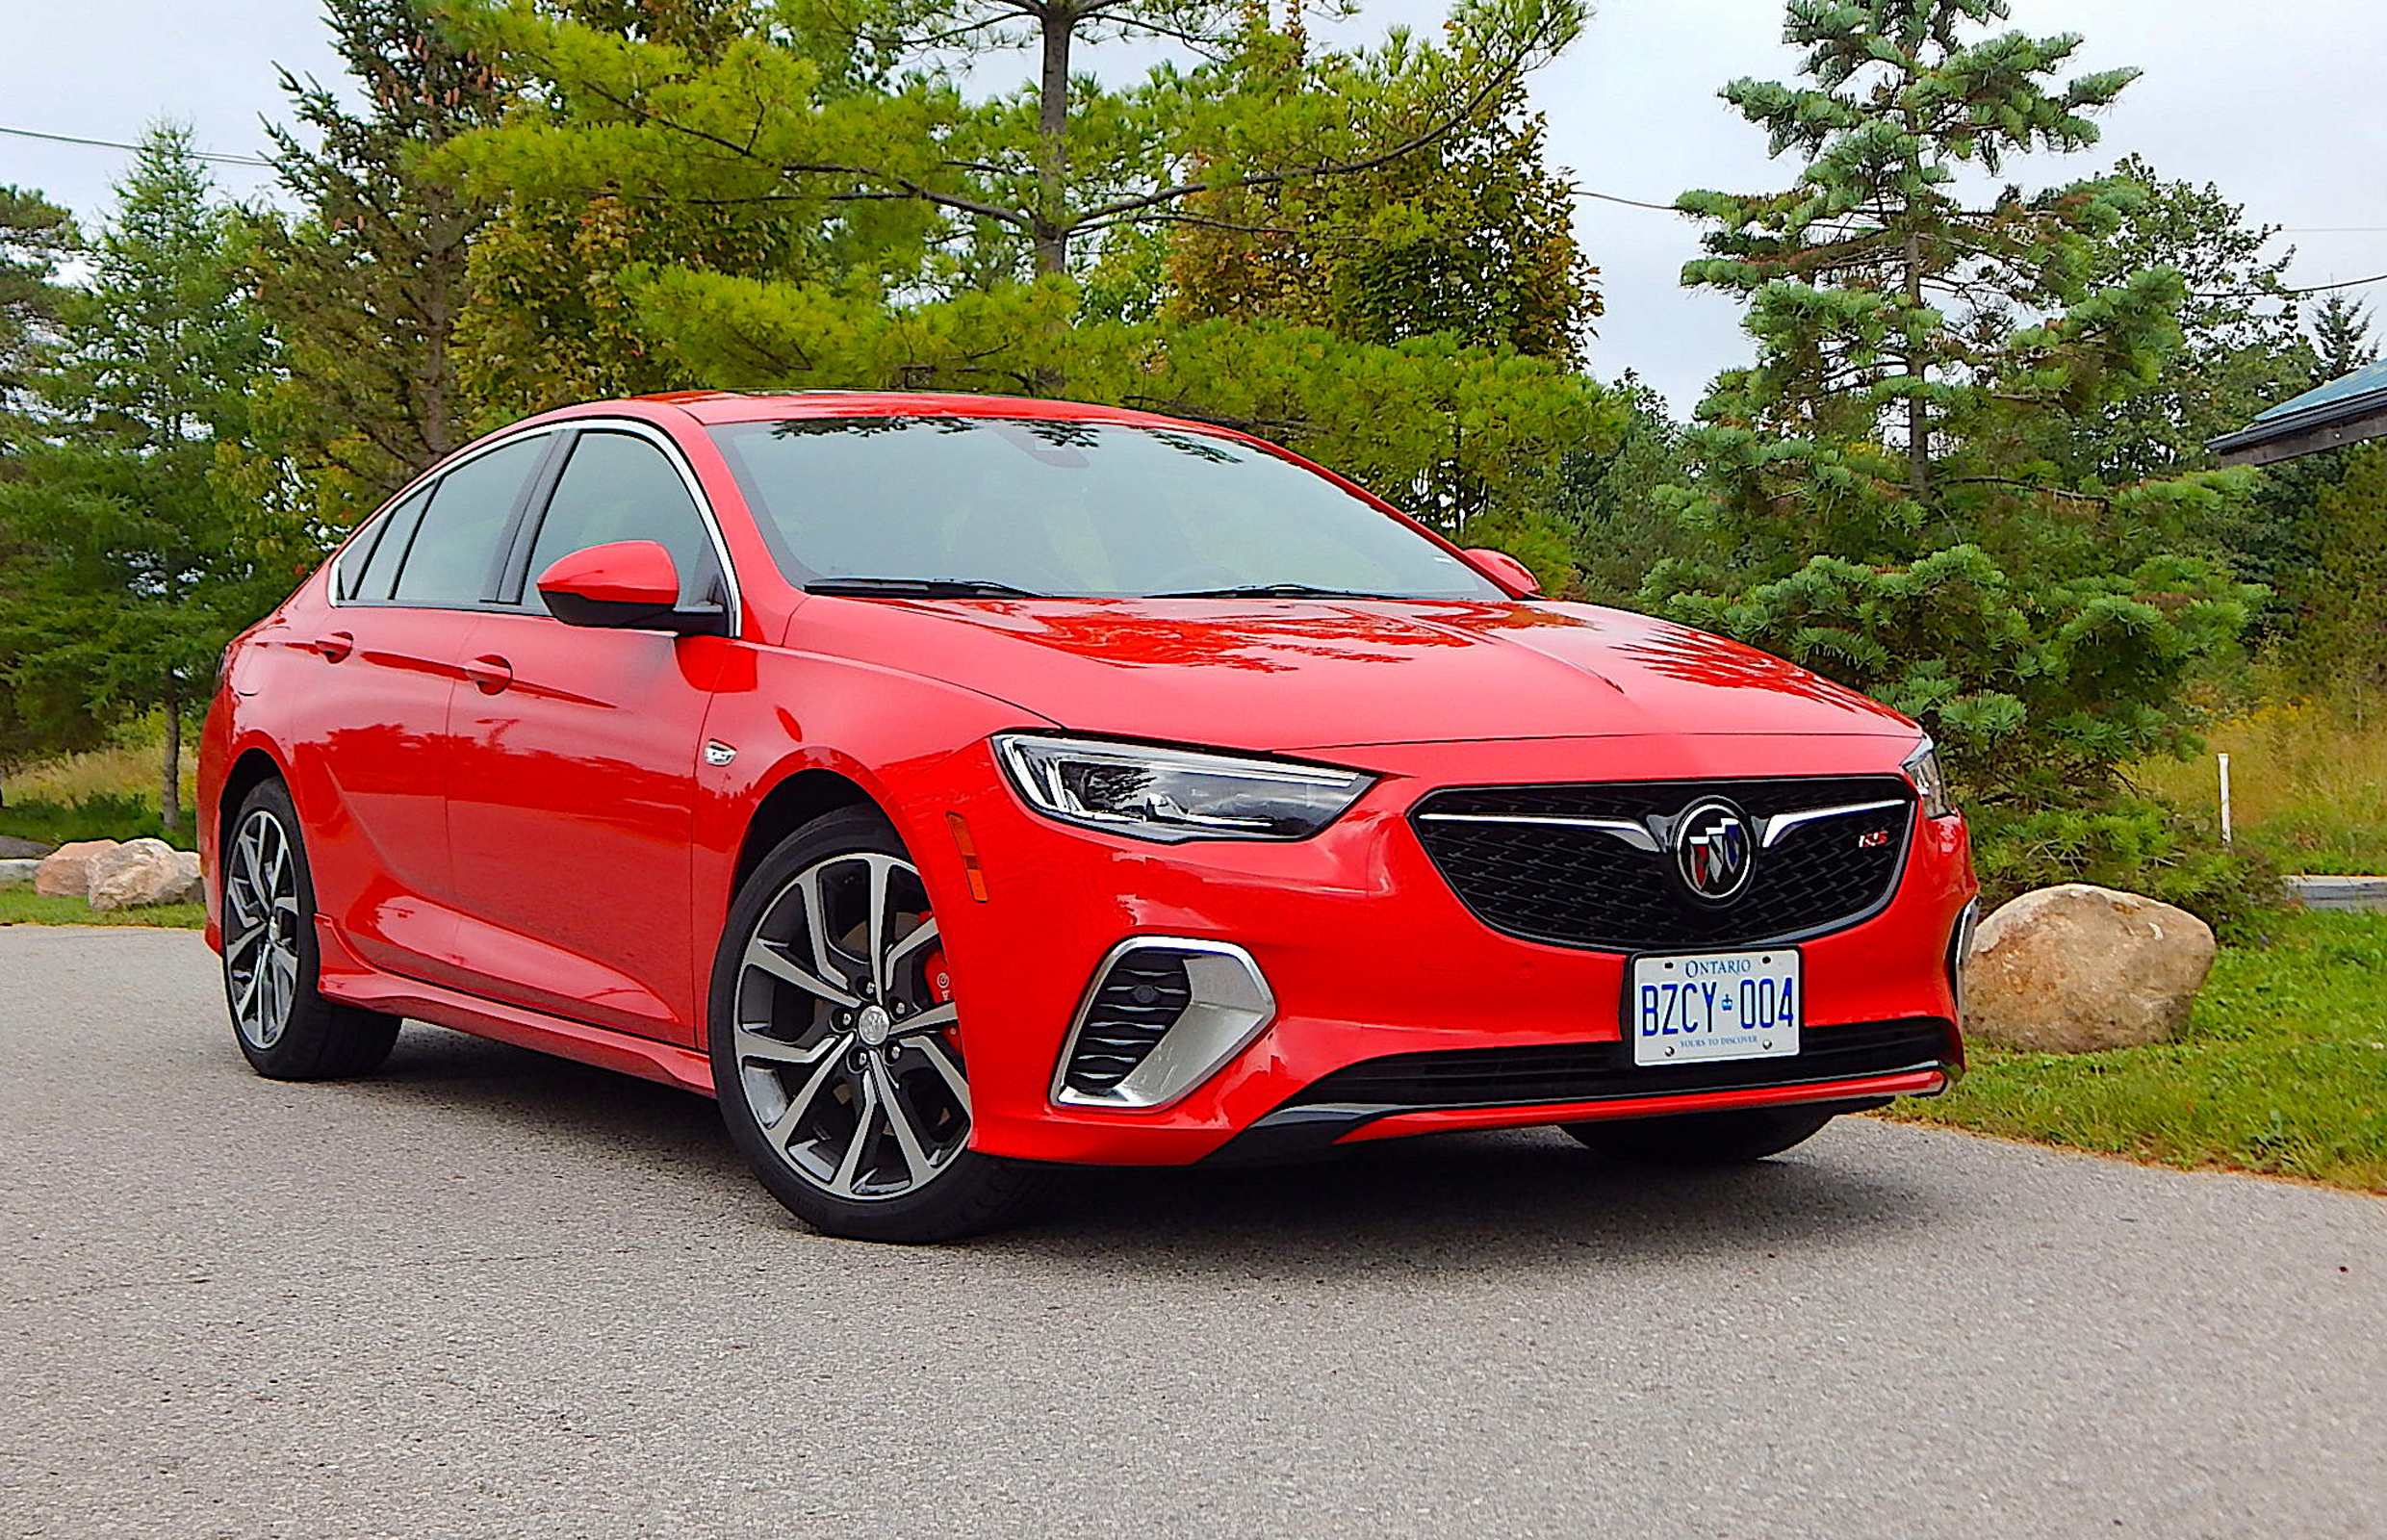 Buick Regal 2020 - View Specs, Prices, Photos & More | Driving New 2021 Buick Regal Awd, Dimensions, Price